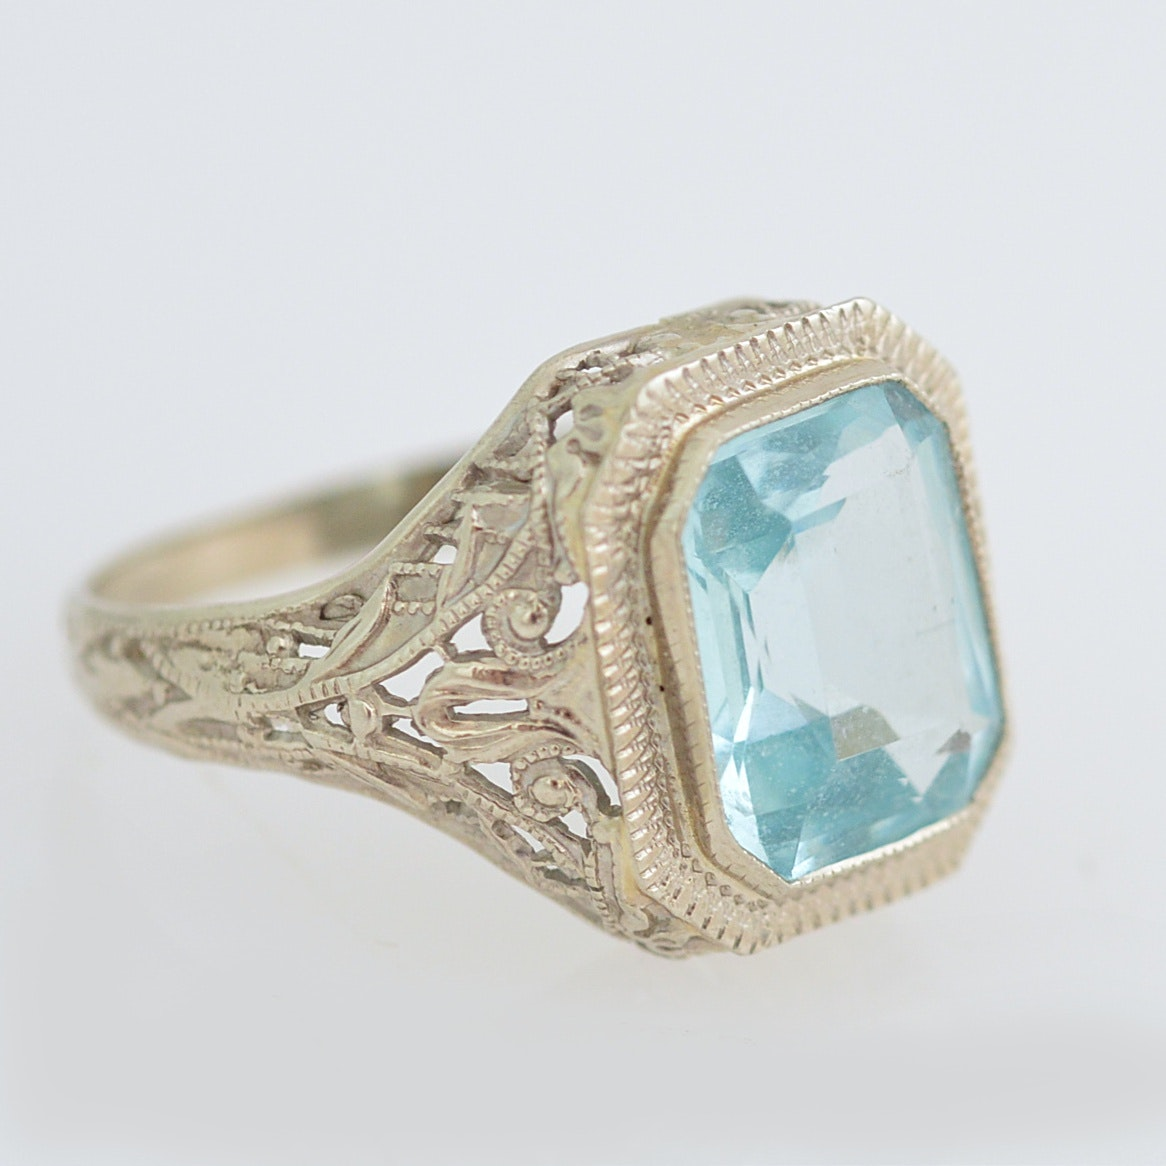 14K White Gold and Blue Glass Ring